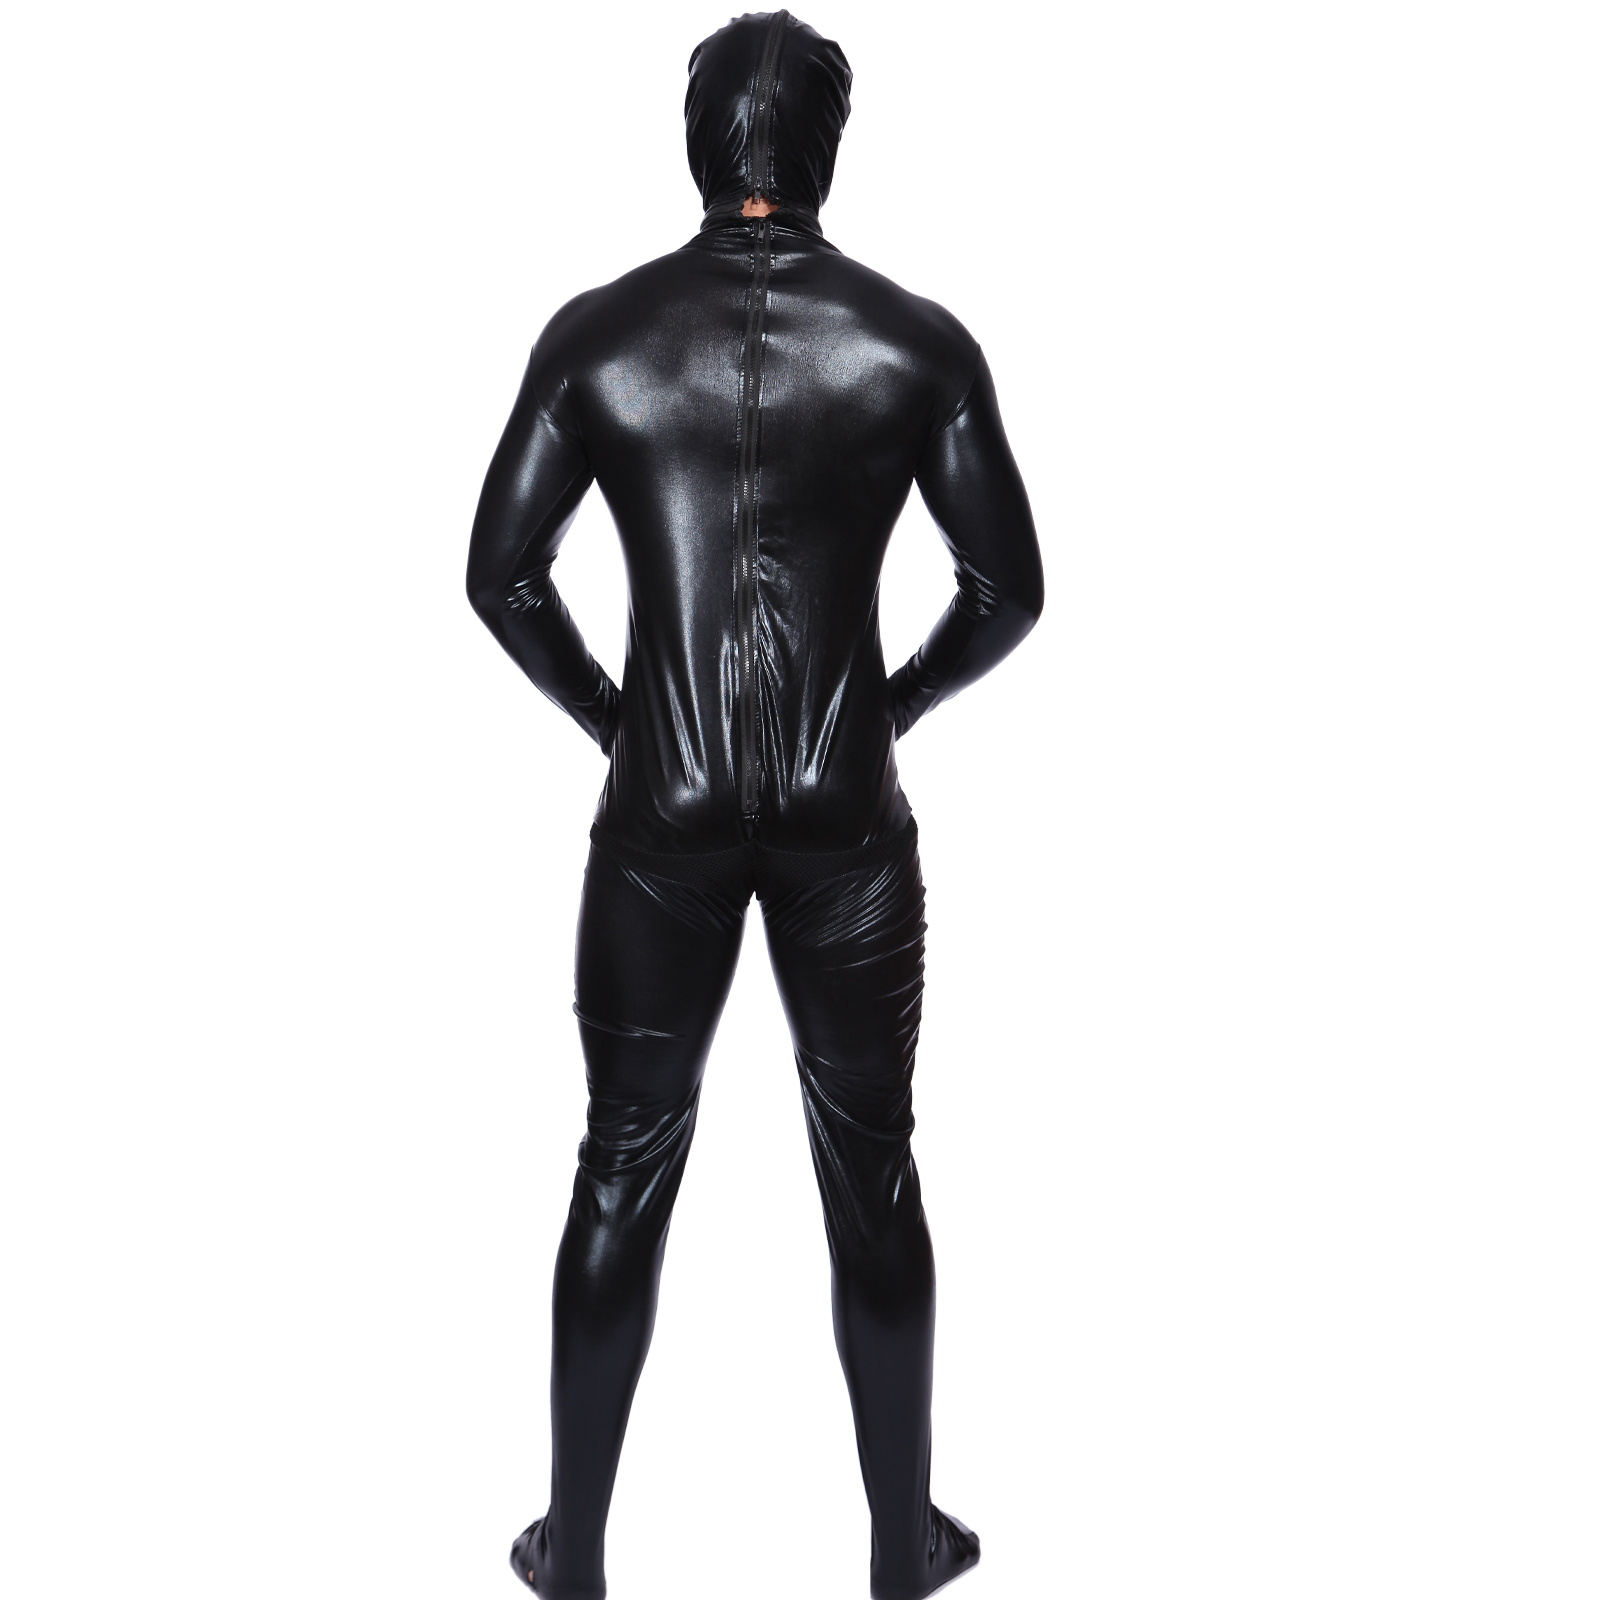 ebony mens fetish costume